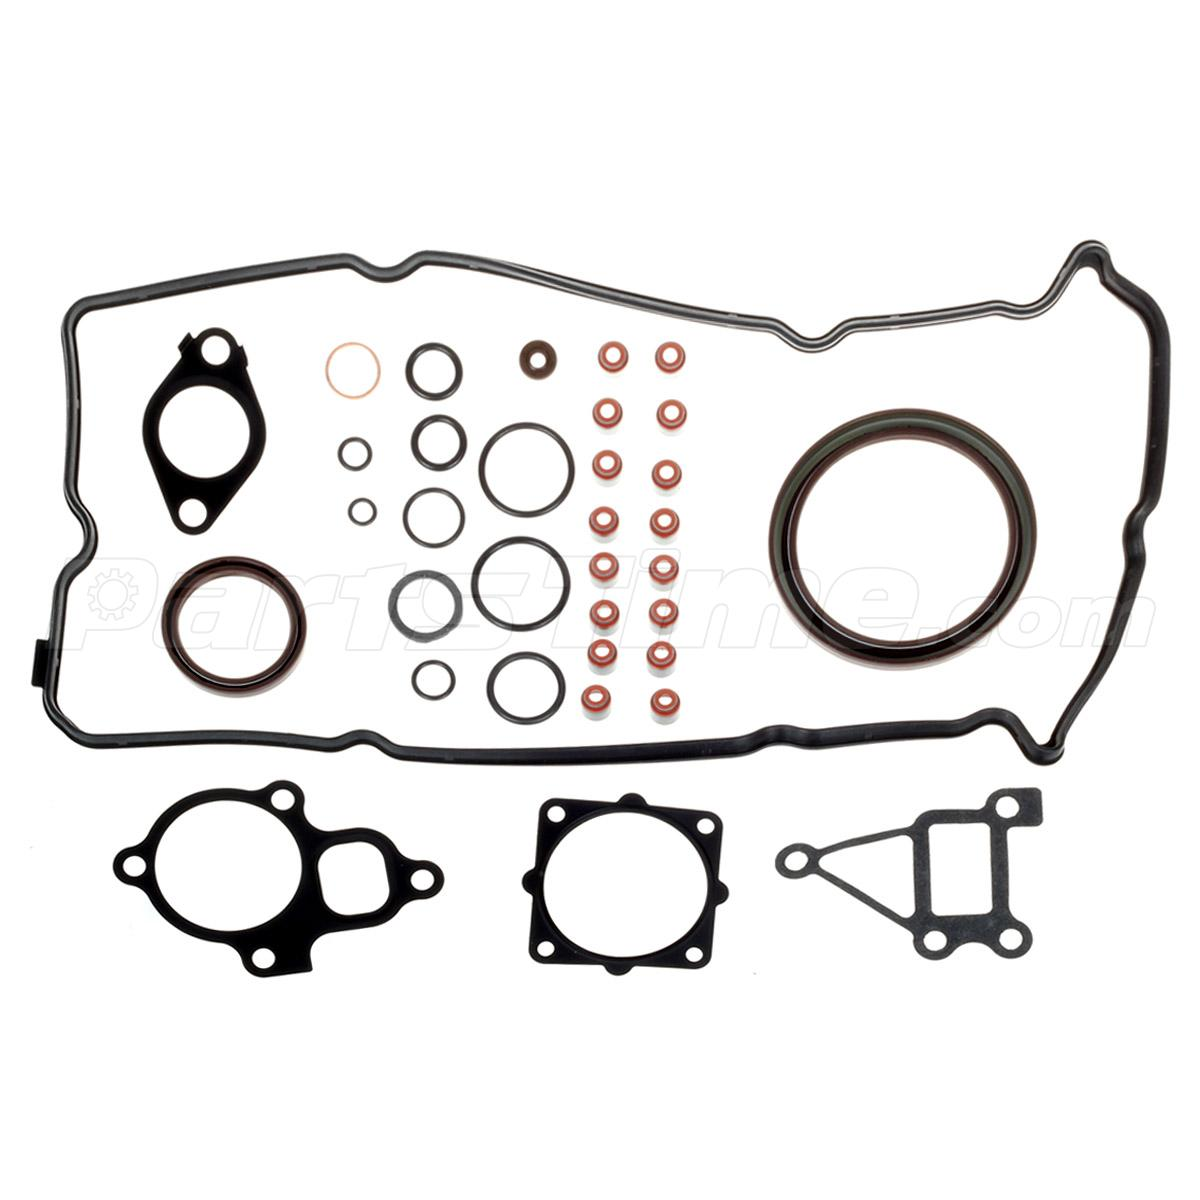 Engine Cylinder Head Gasket Set For 04 06 Nissan Altima 2